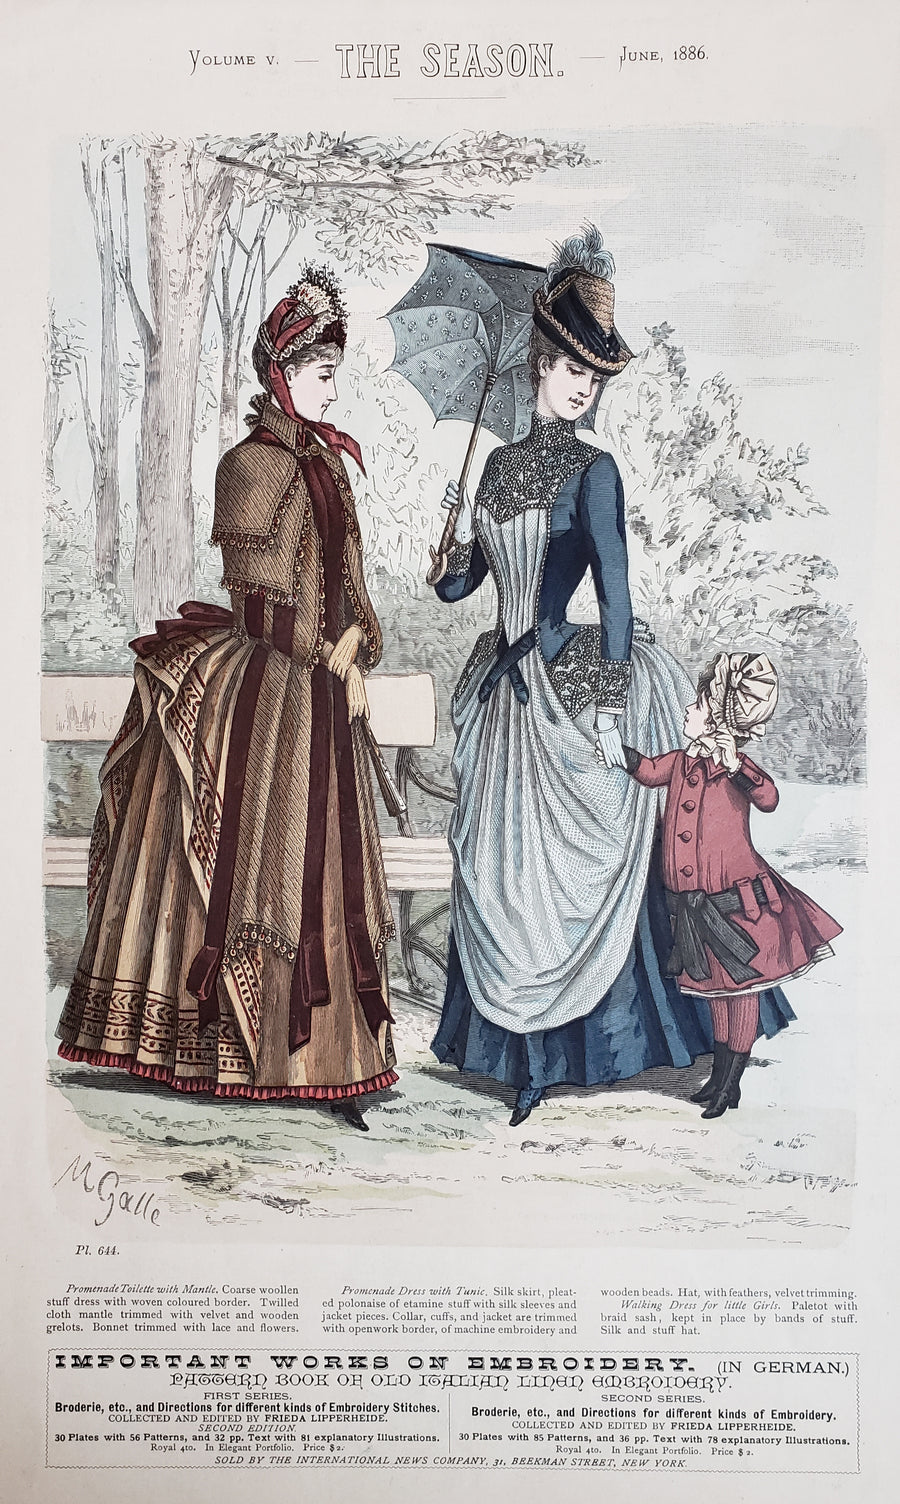 Antique Print - Women's Fashion - The Season, June, 1886 by: M. Galle